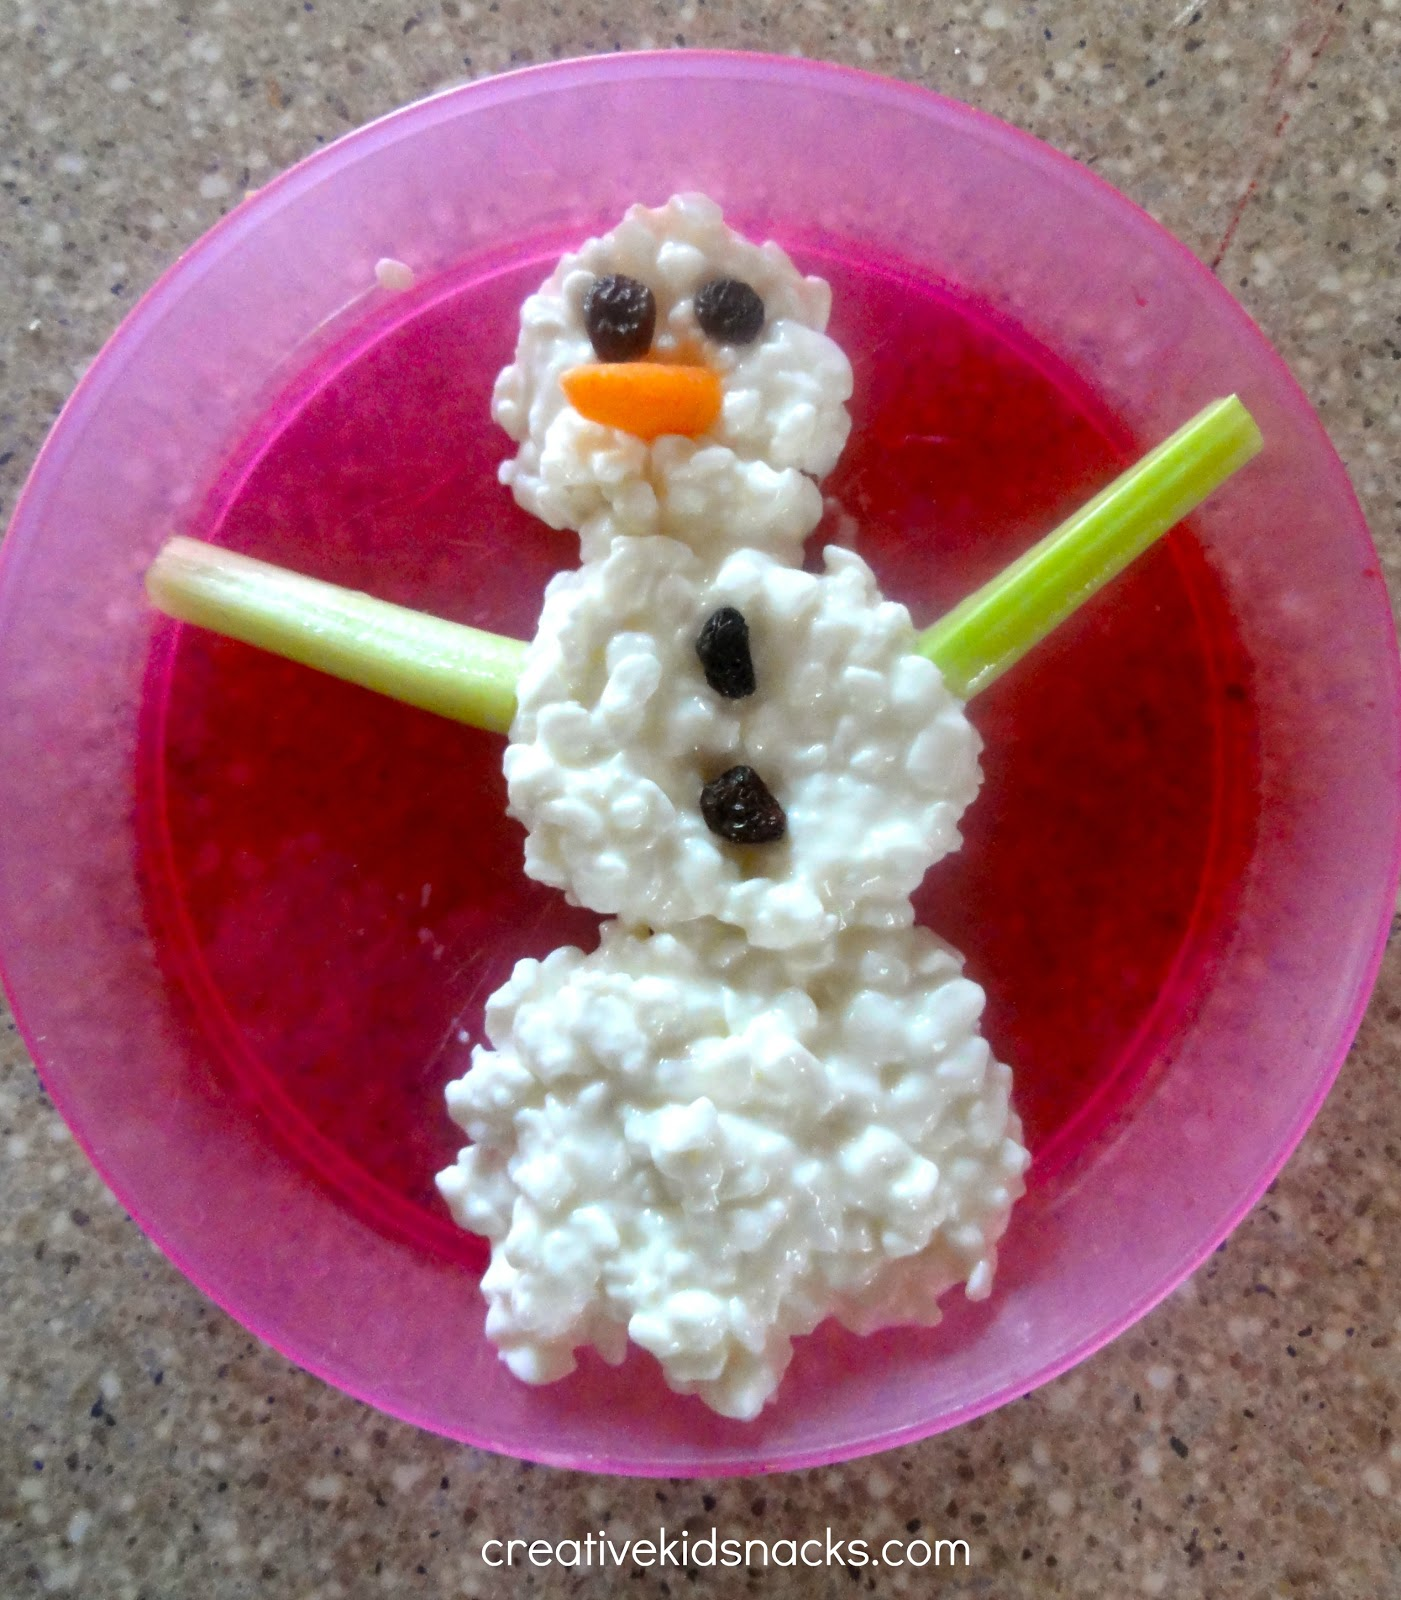 Healthy Winter Snacks For Kids Healthy Winter Snacks ❄